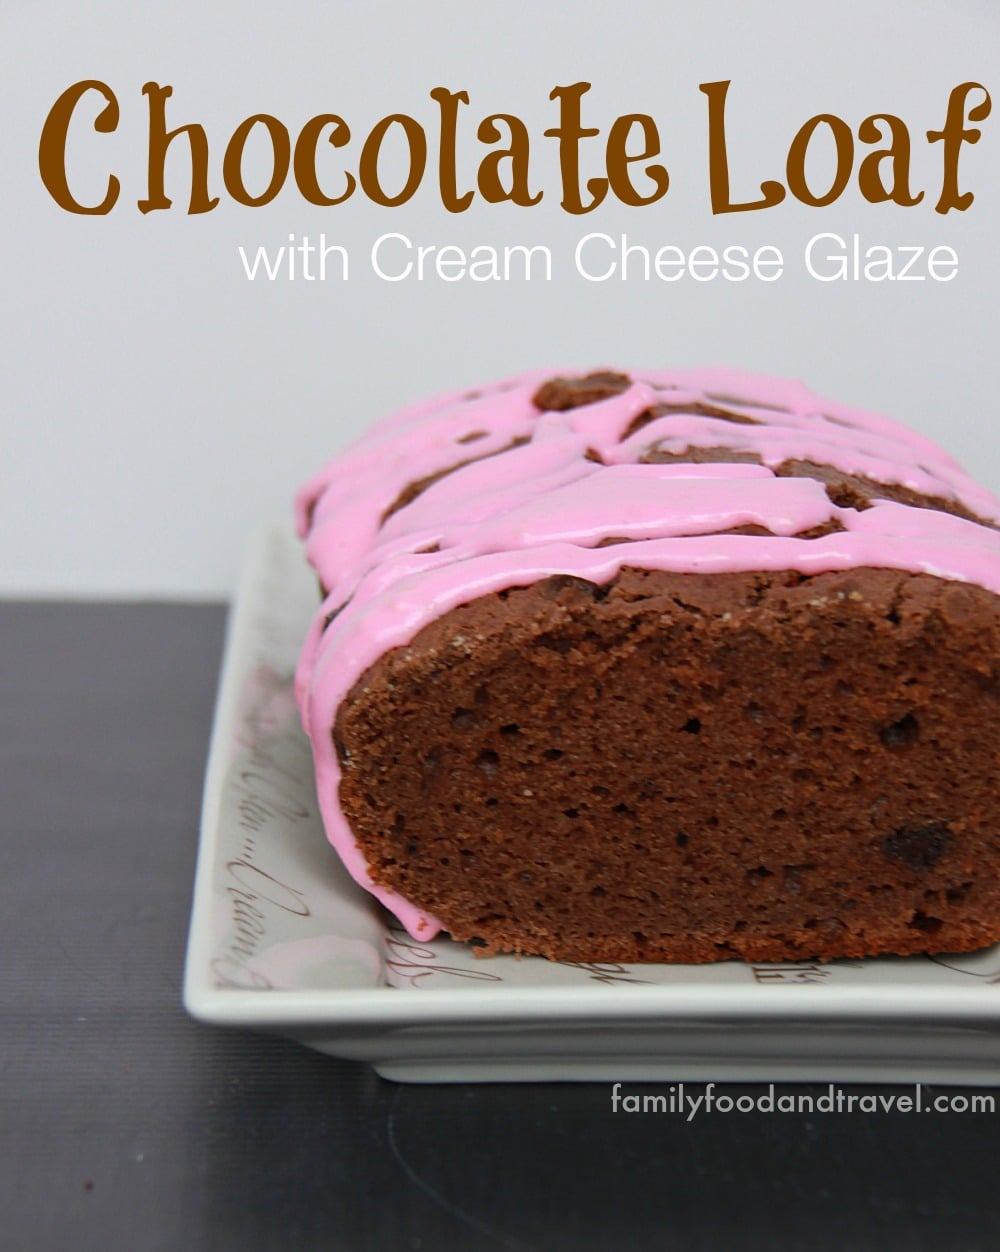 Chocolate Loaf with Cream Cheese Glaze 2